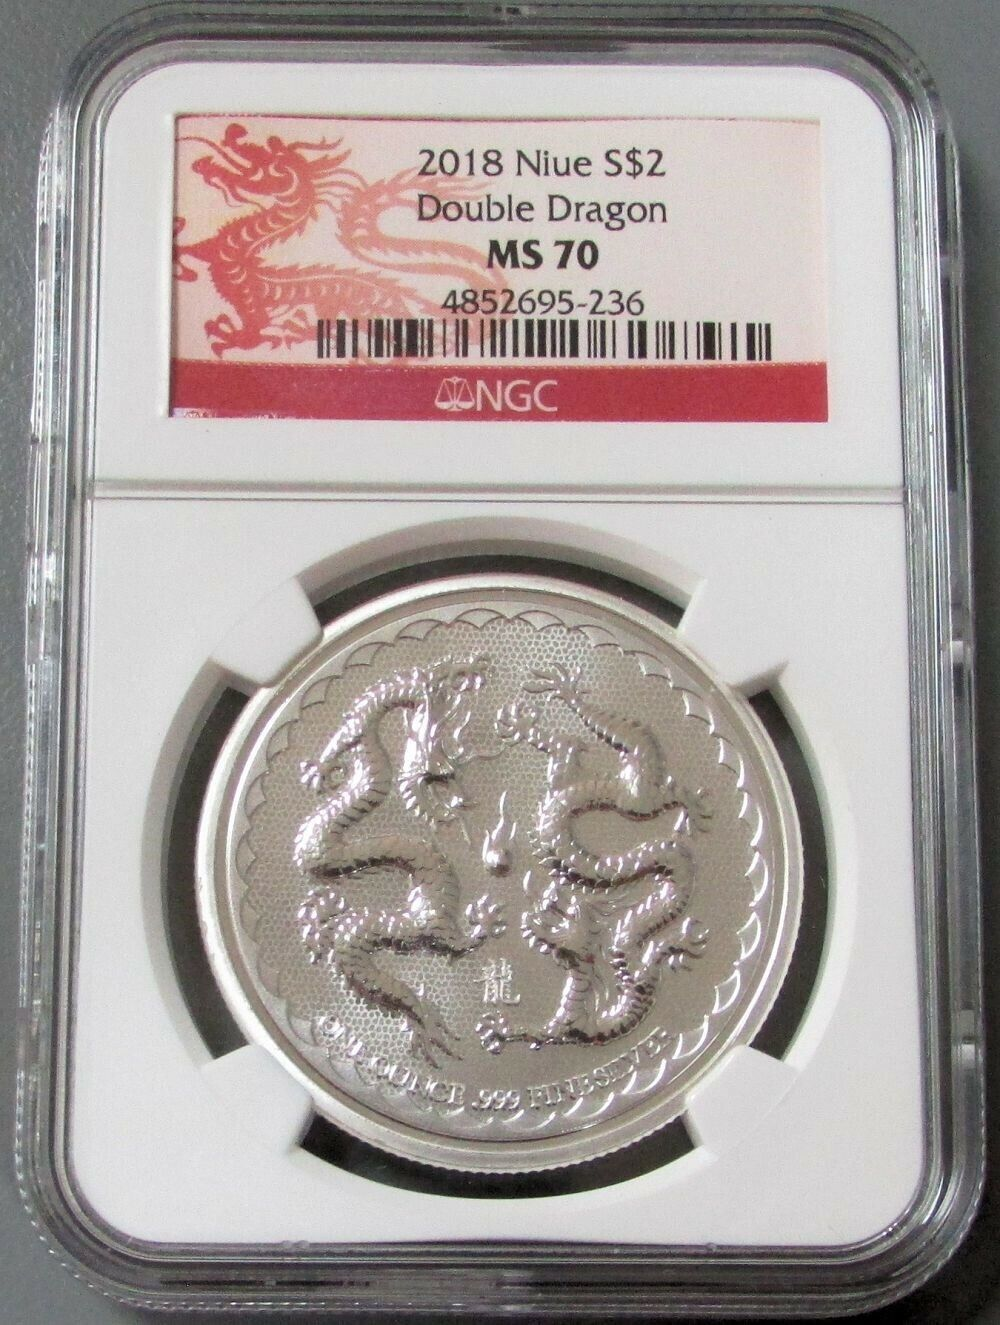 2018 NIUE $2 DOUBLE DRAGON PEARL OF WISDOM SILVER 1 OZ NGC MS 70 PERFECTION !